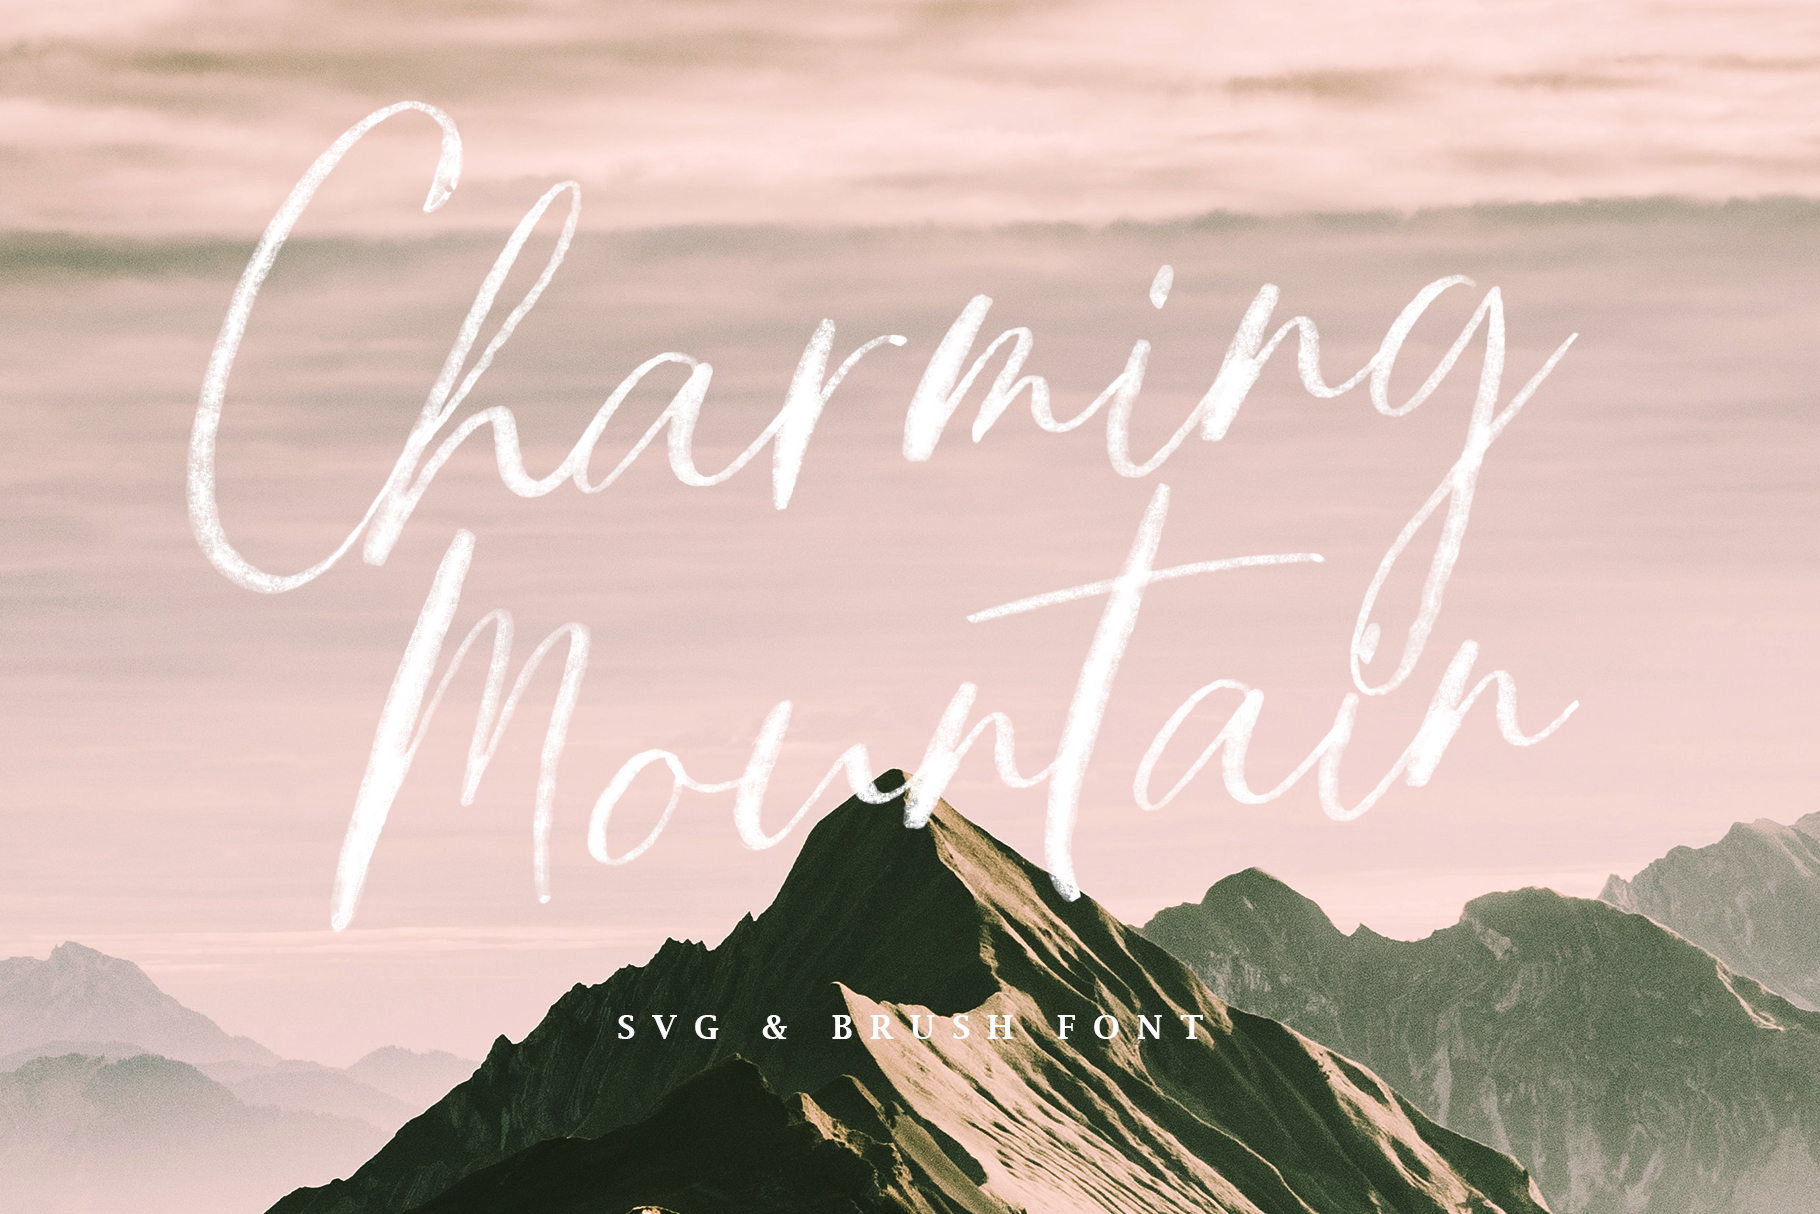 Charming Mountain - SVG example image 2